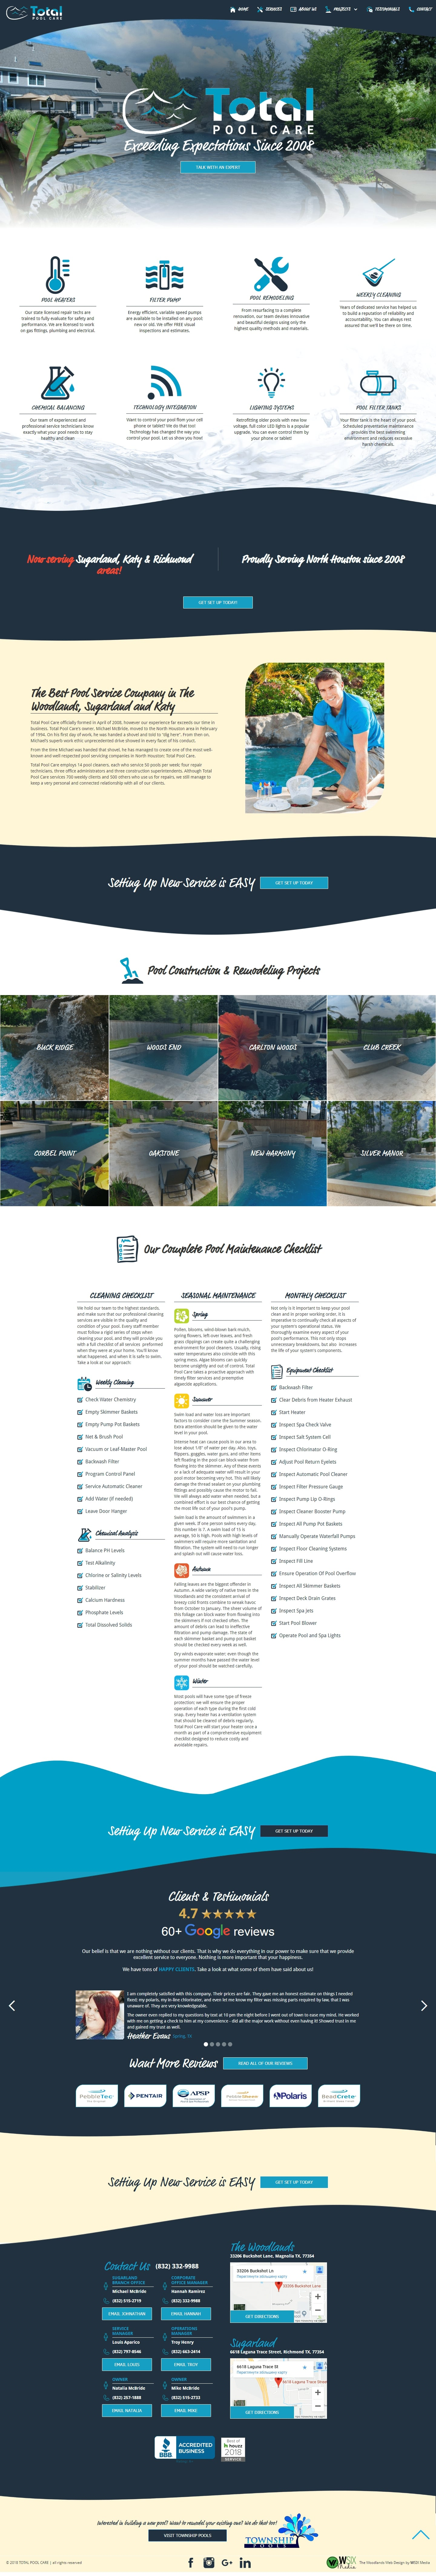 Total Pool Care The Woodlands Web Design Page